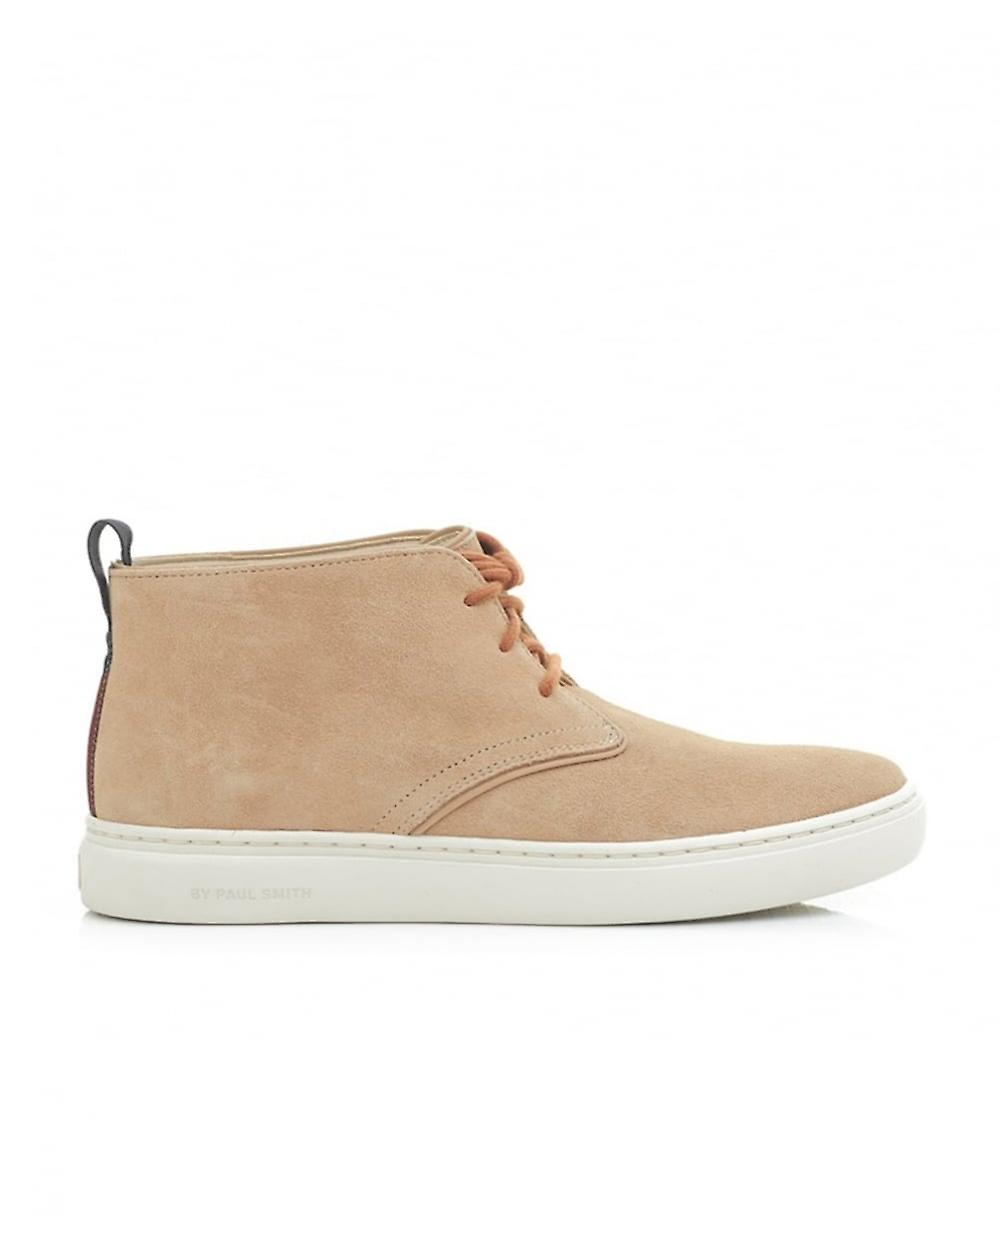 Paul Smith Fong Suede Cupsole Chukka Boots